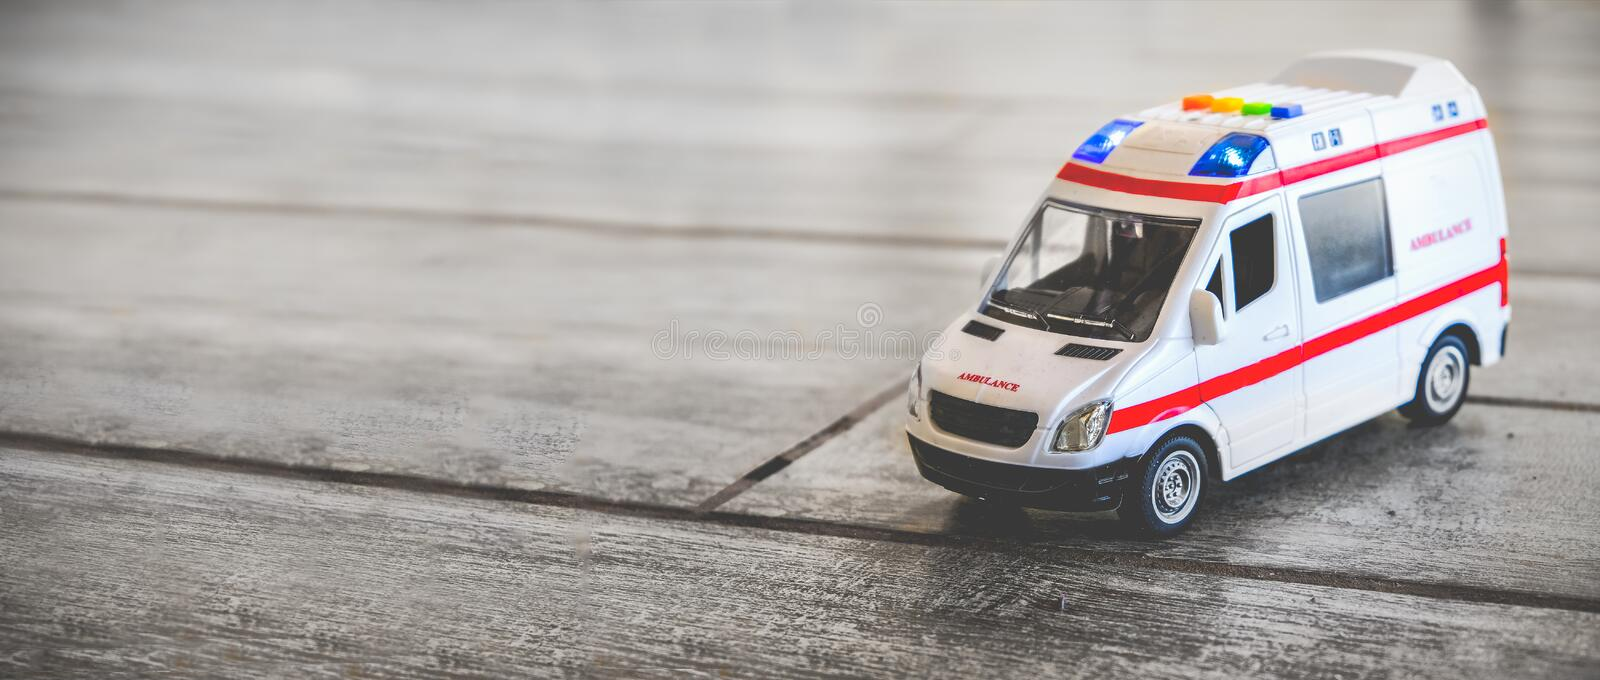 Ambulance horizontal background health care toy sirens blue lights copy space.  royalty free stock images